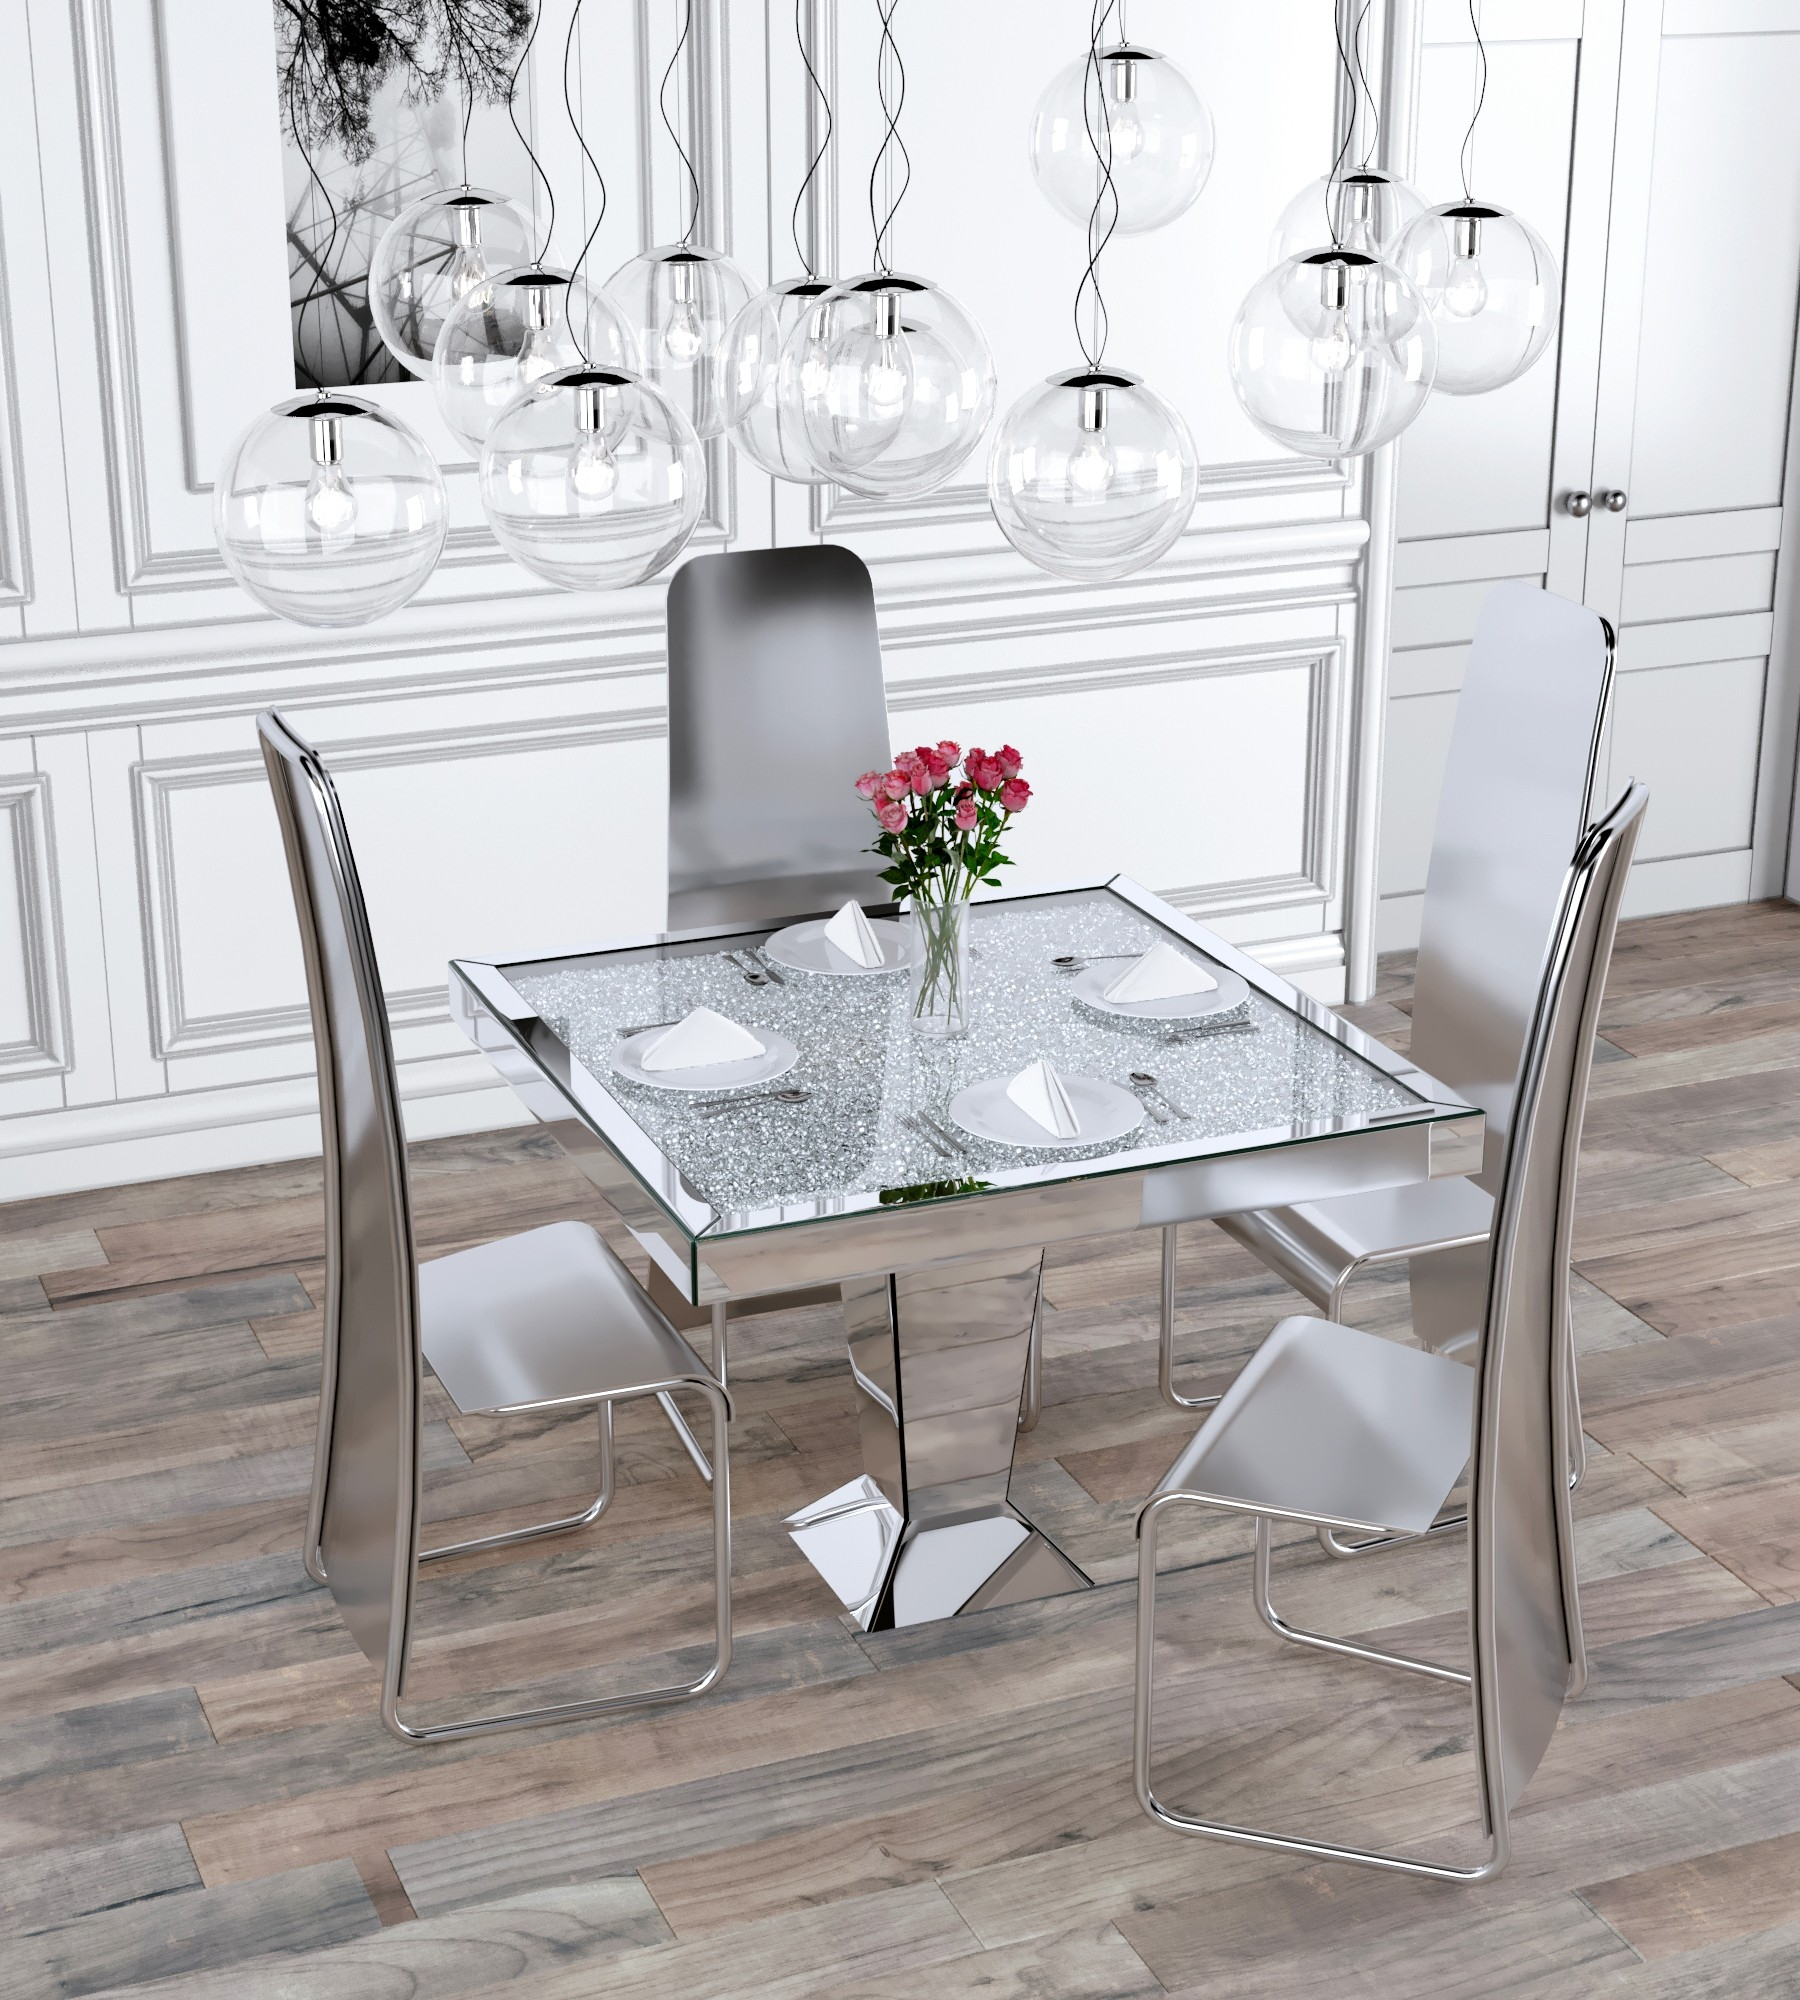 Crushed Diamond Mirrored Coffee Table: Crushed Diamond 4 Seater Square Dining Table